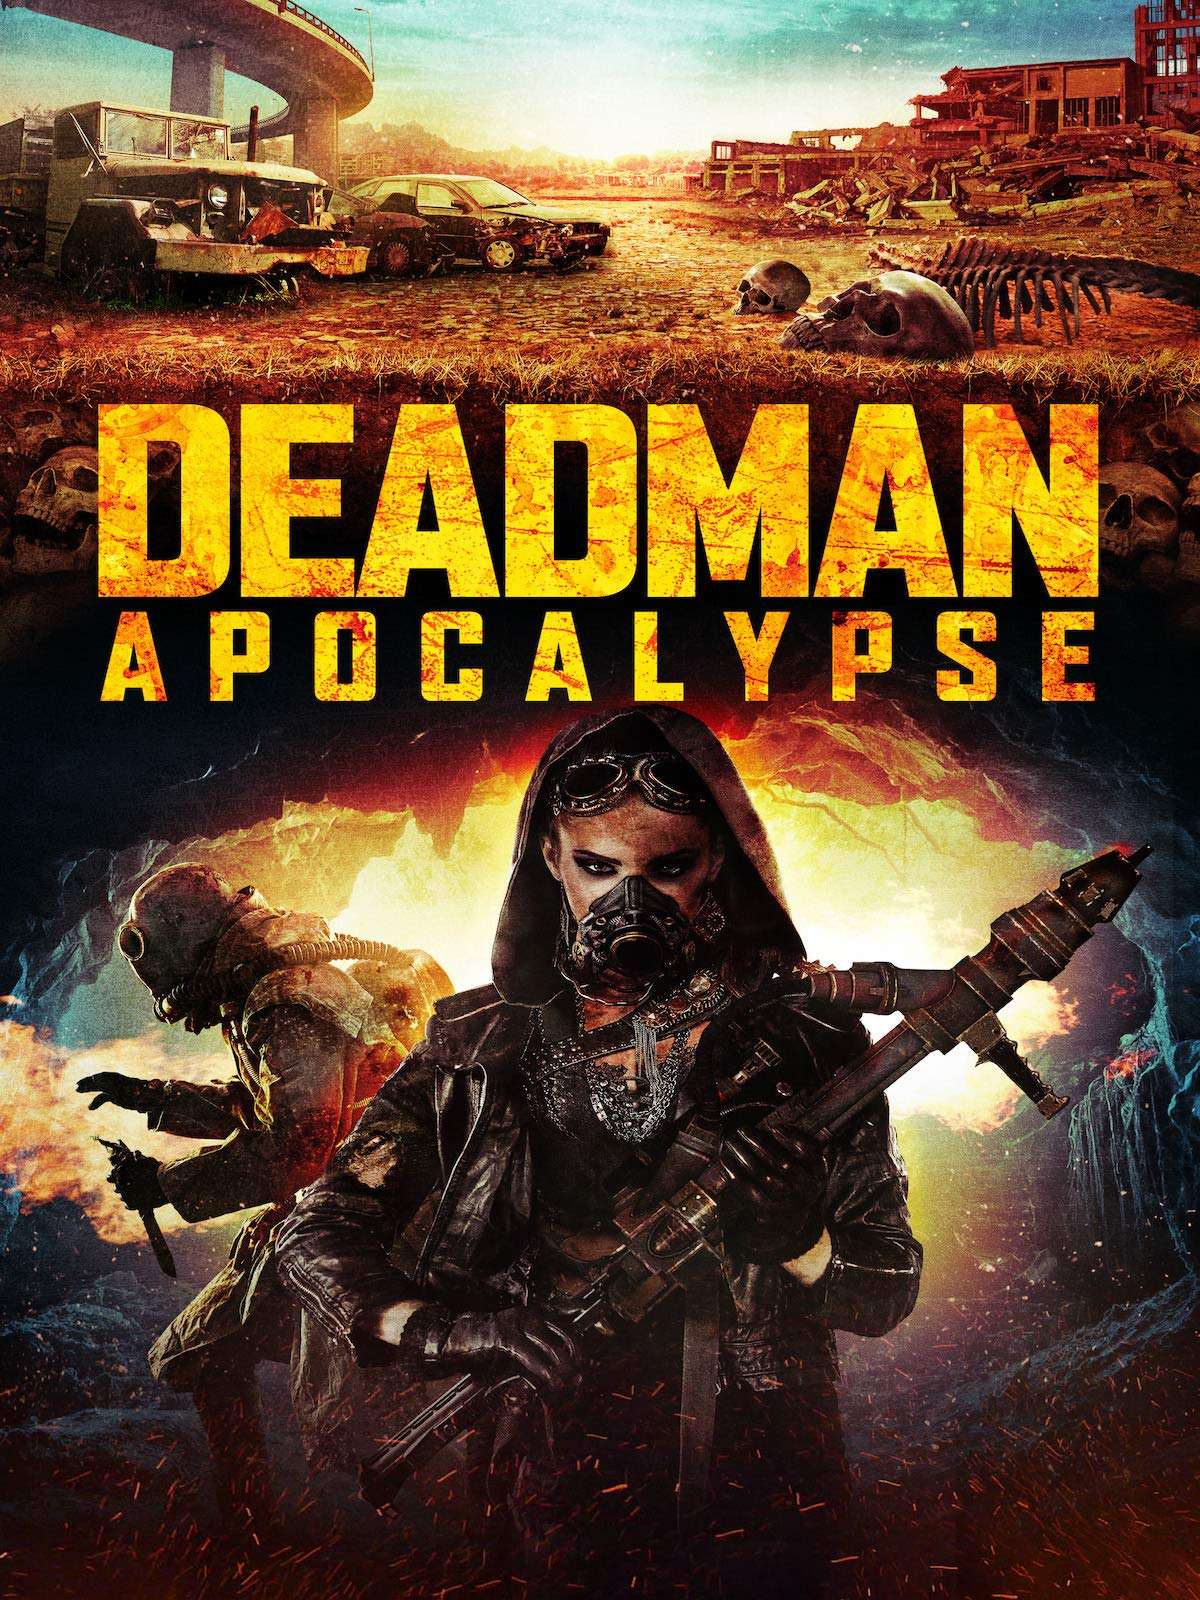 Deadman Apocalypse on Amazon Prime Instant Video UK